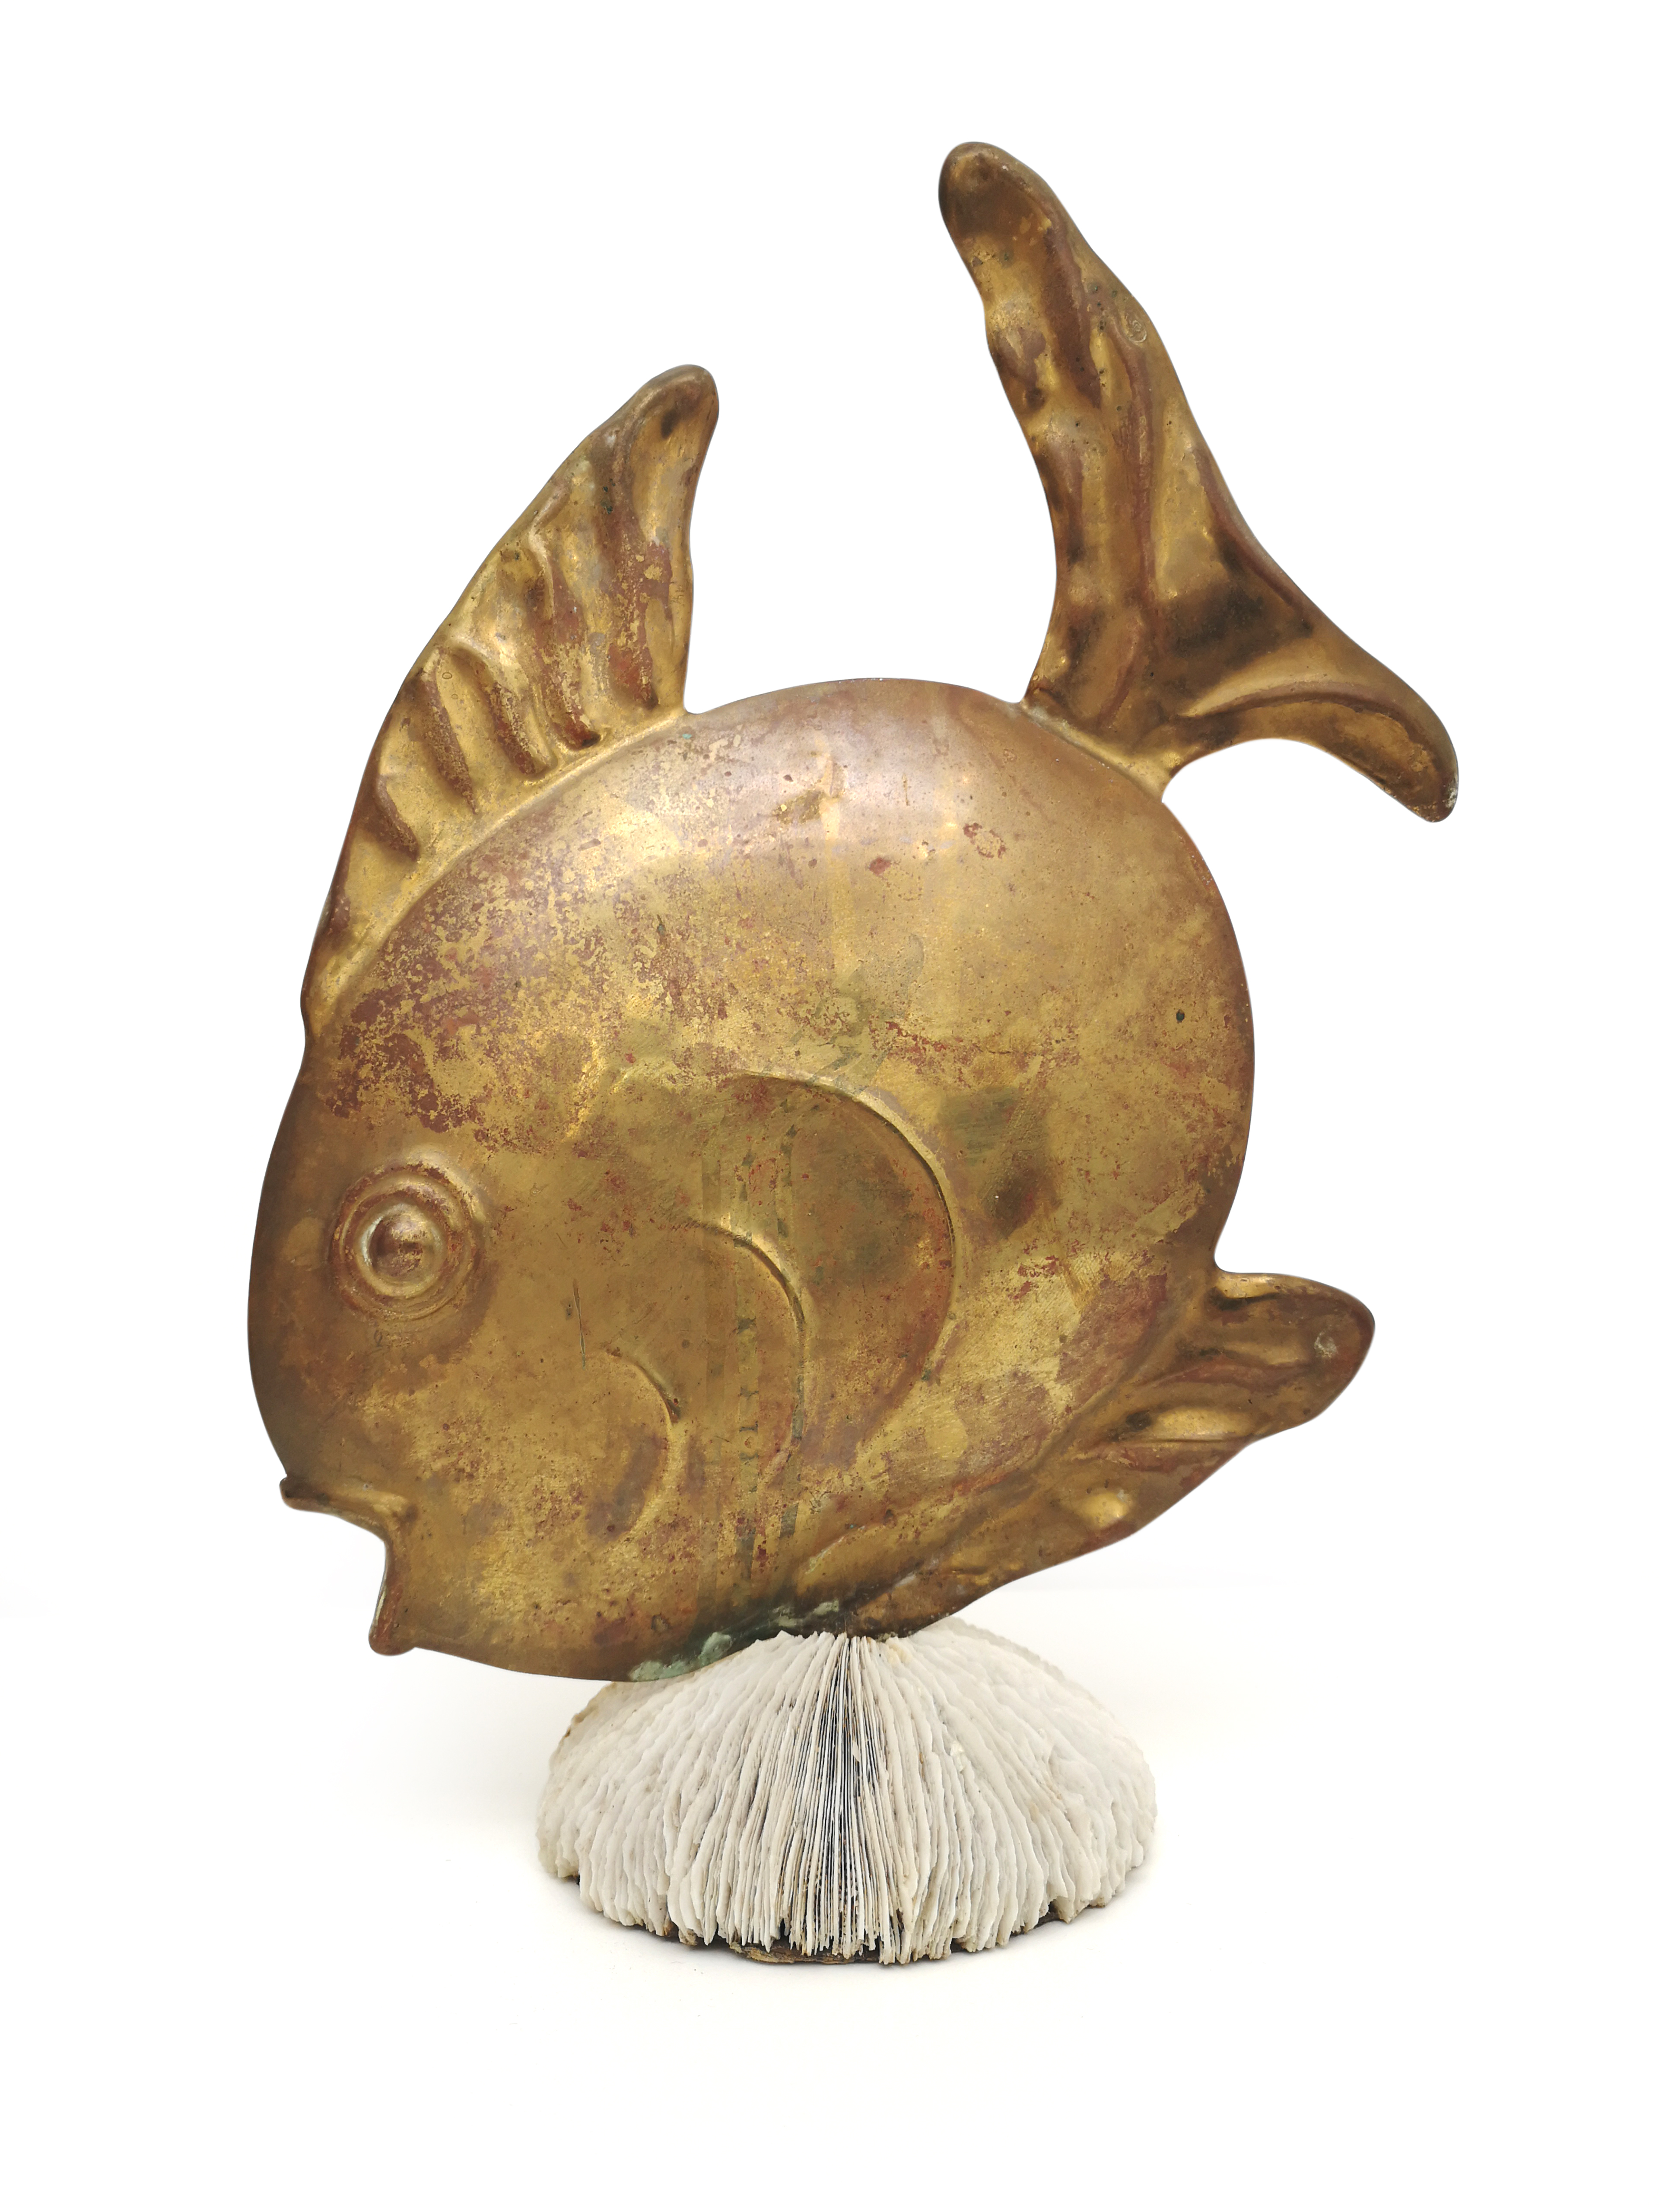 bronze sculpture of a fish